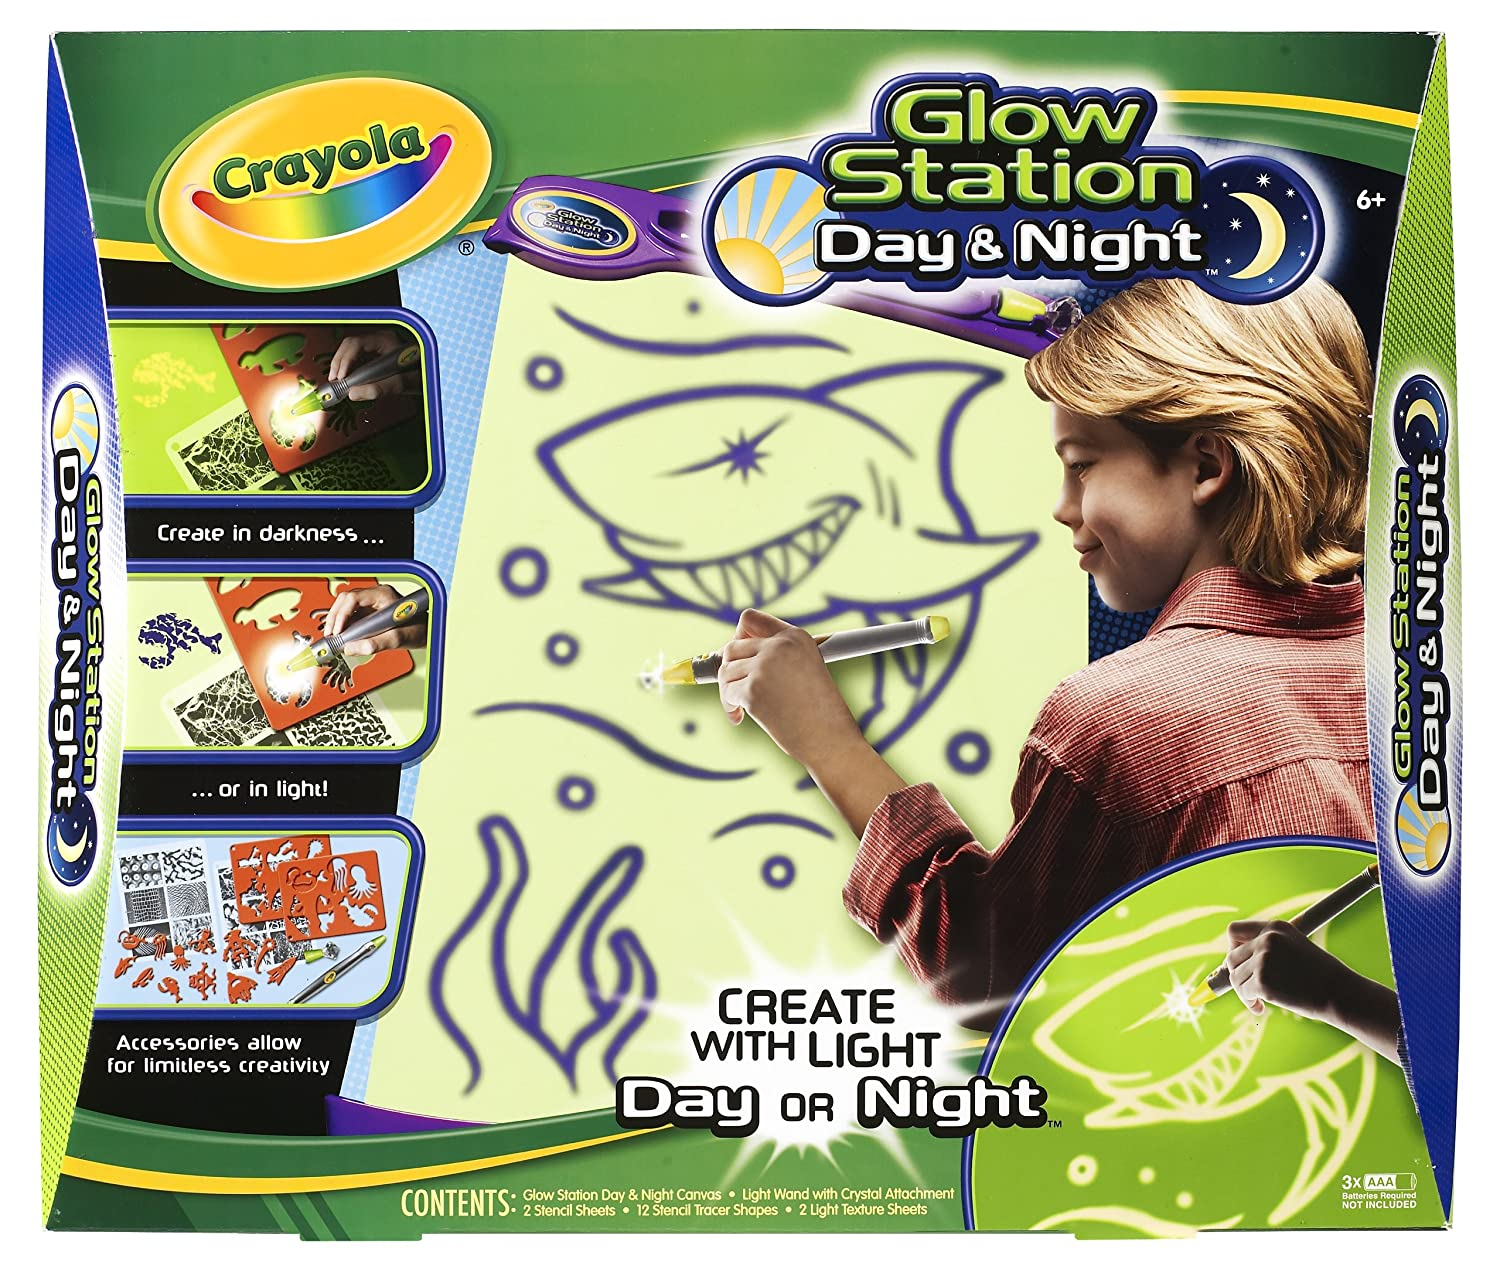 Crayola Glow Station Day & Night 95-1002